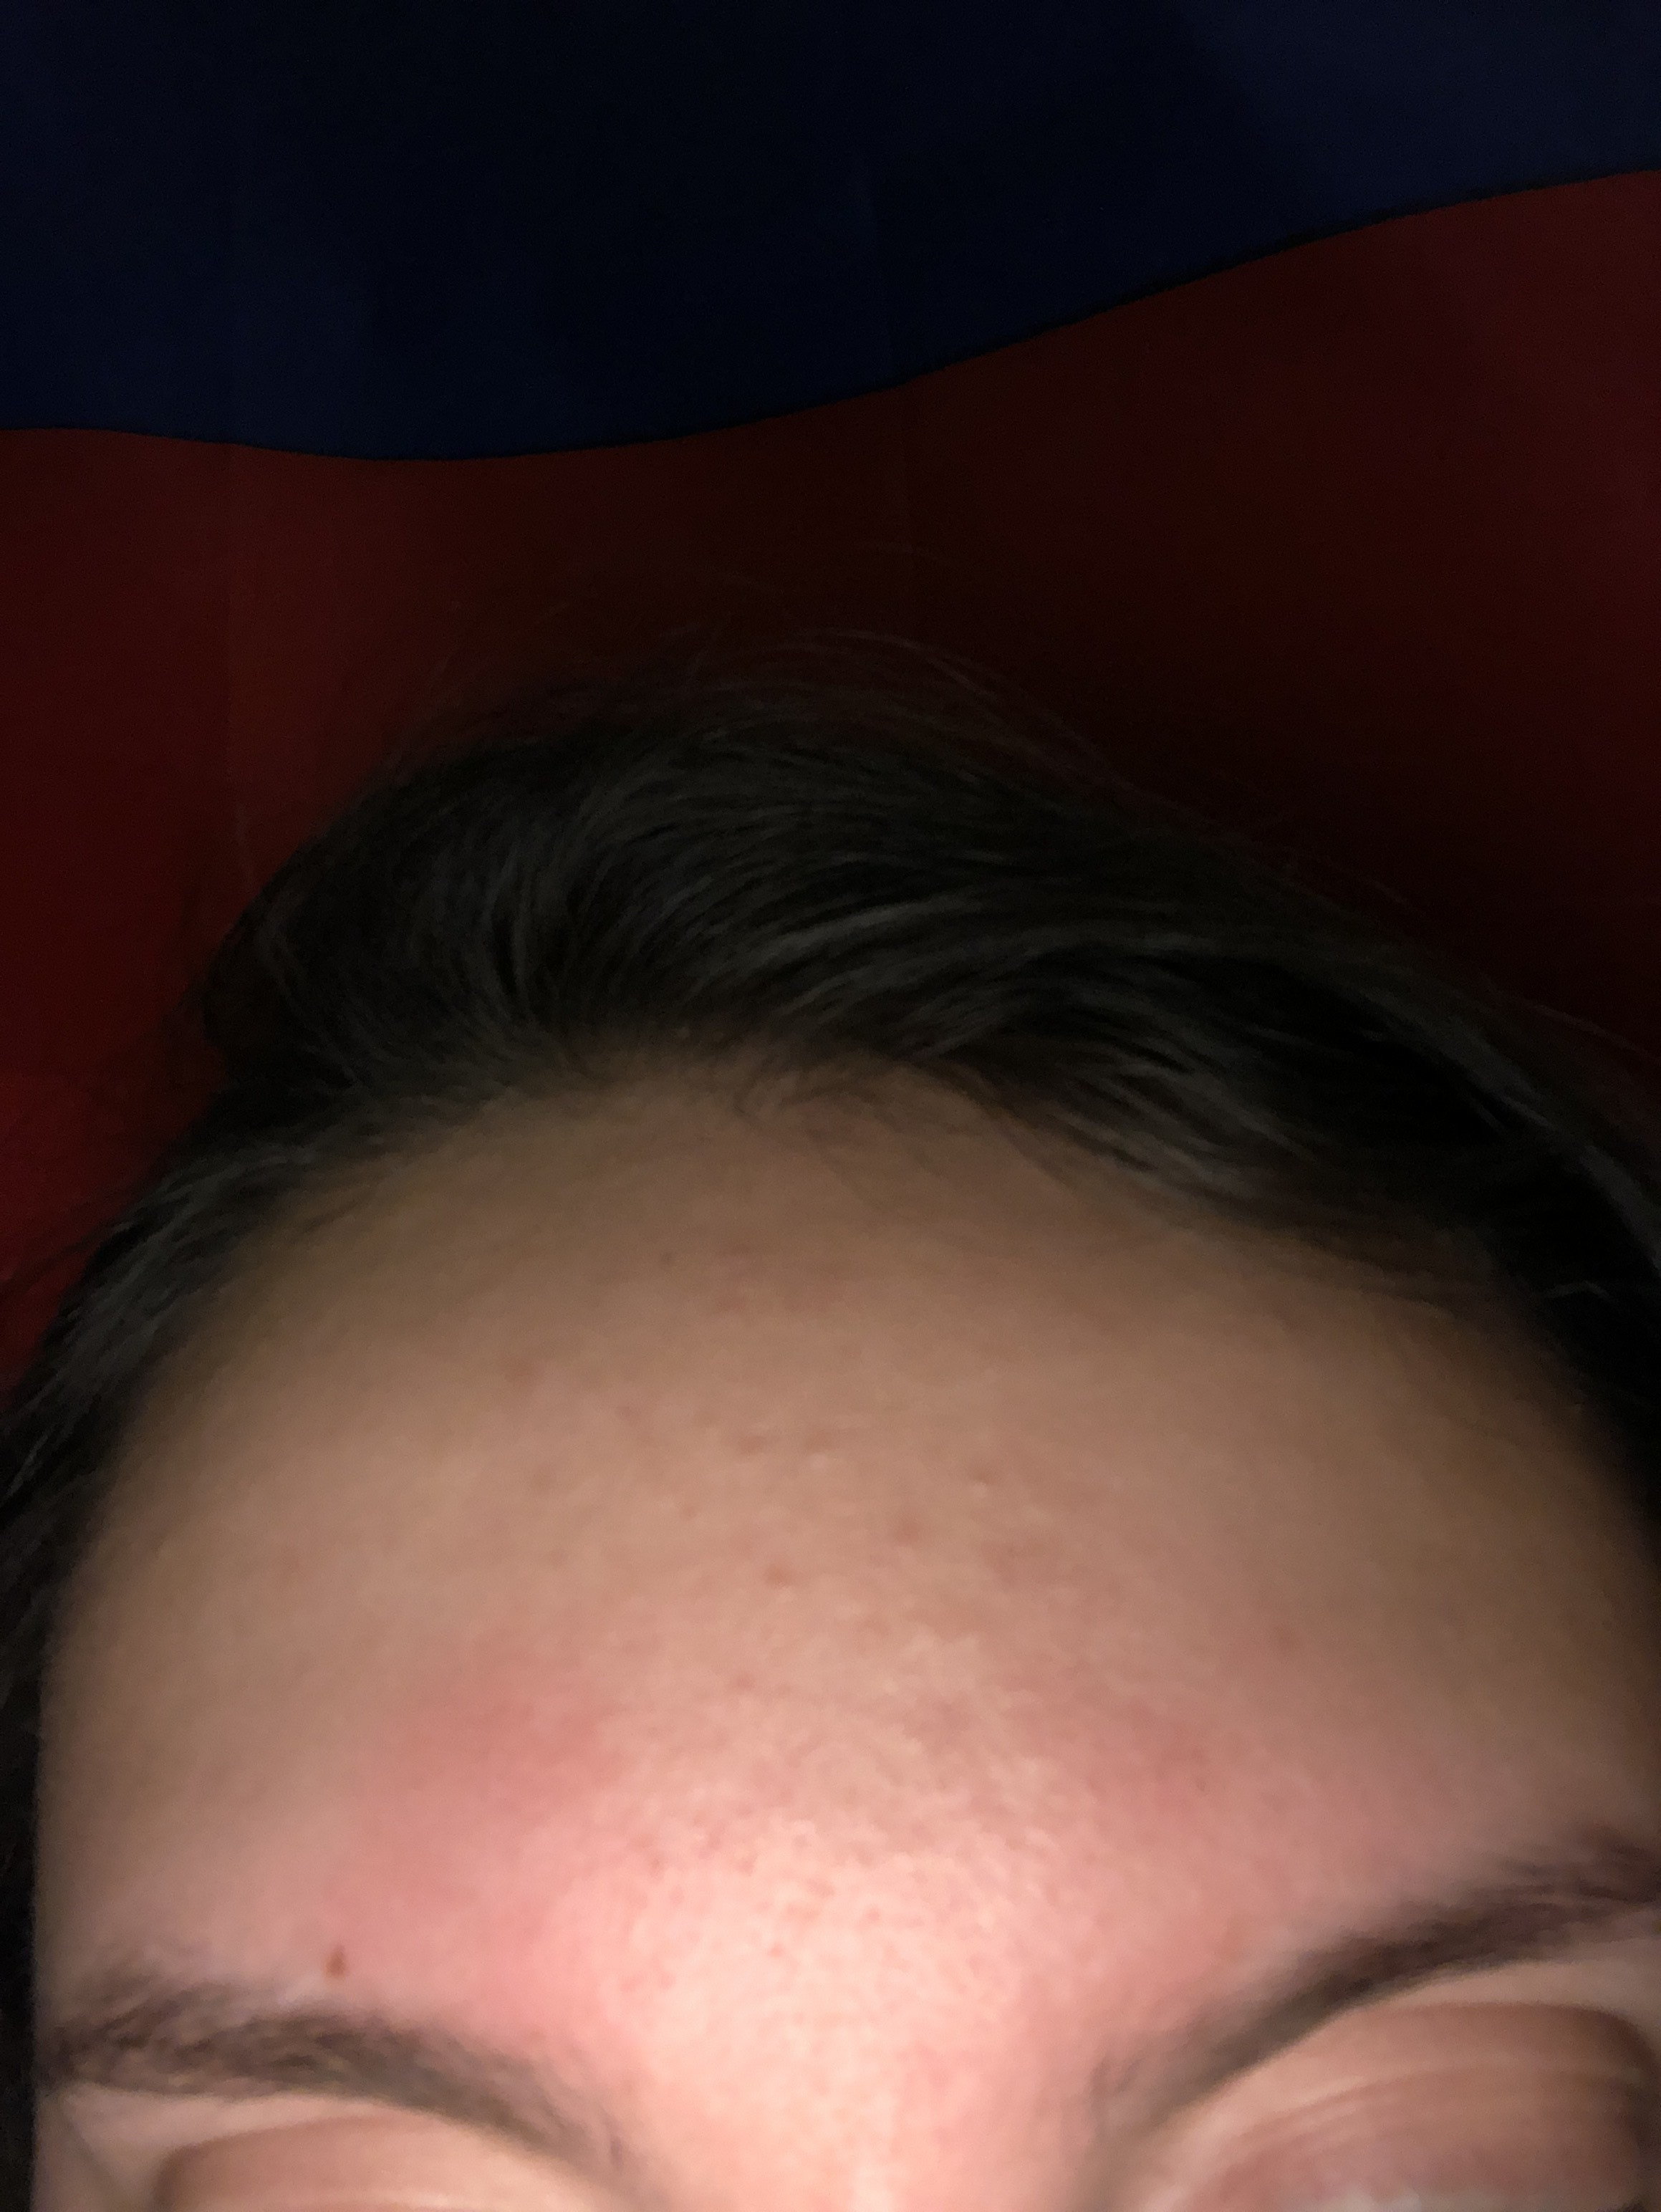 I Have Some Fungal Acne On My Forehead And Chin Any Advice On How To Get Rid Of It Skin Care Junkie